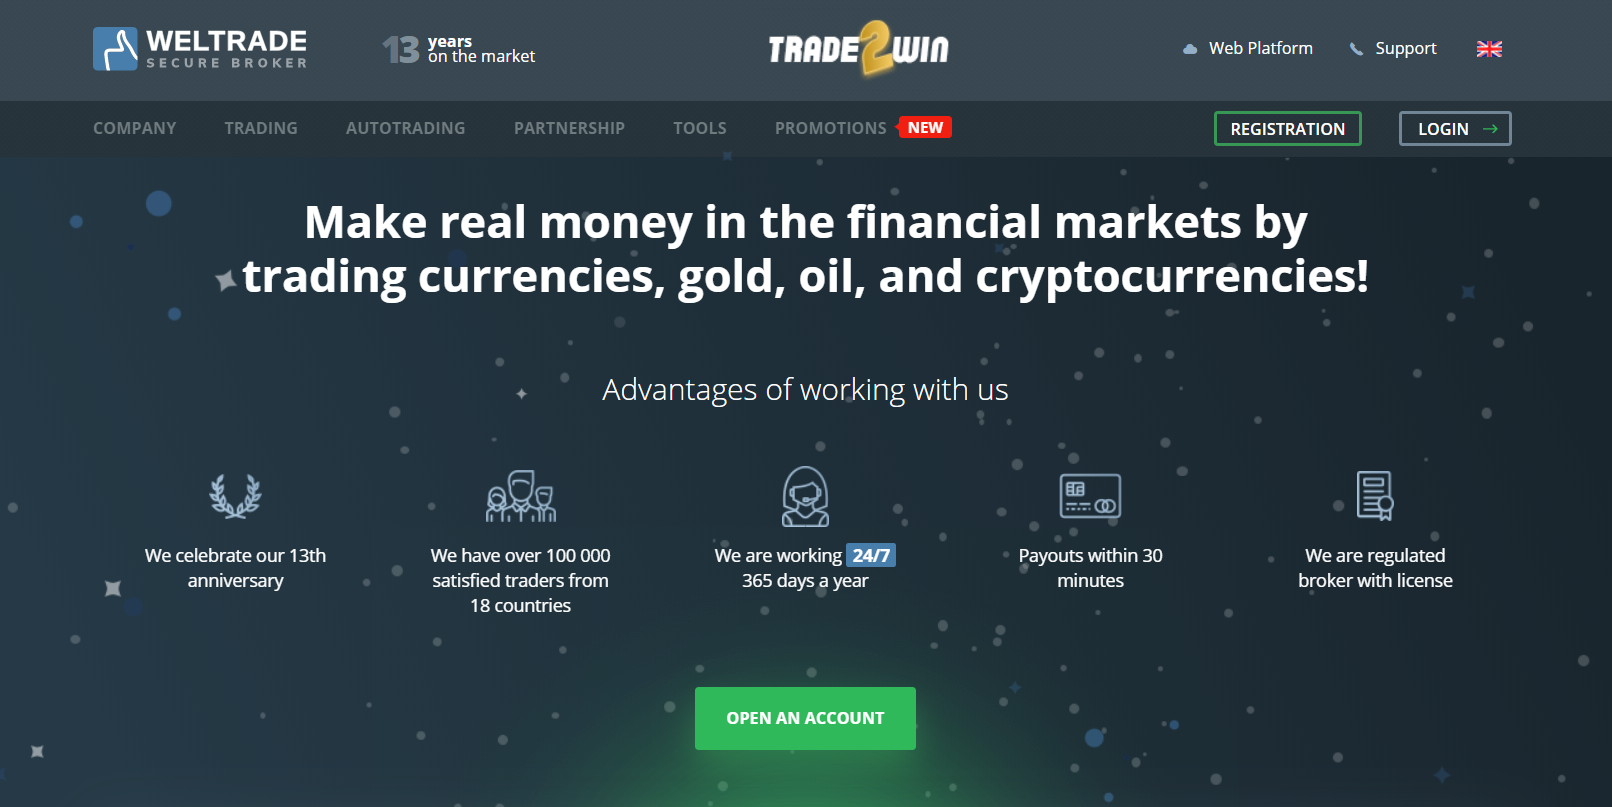 Weltrade homepage